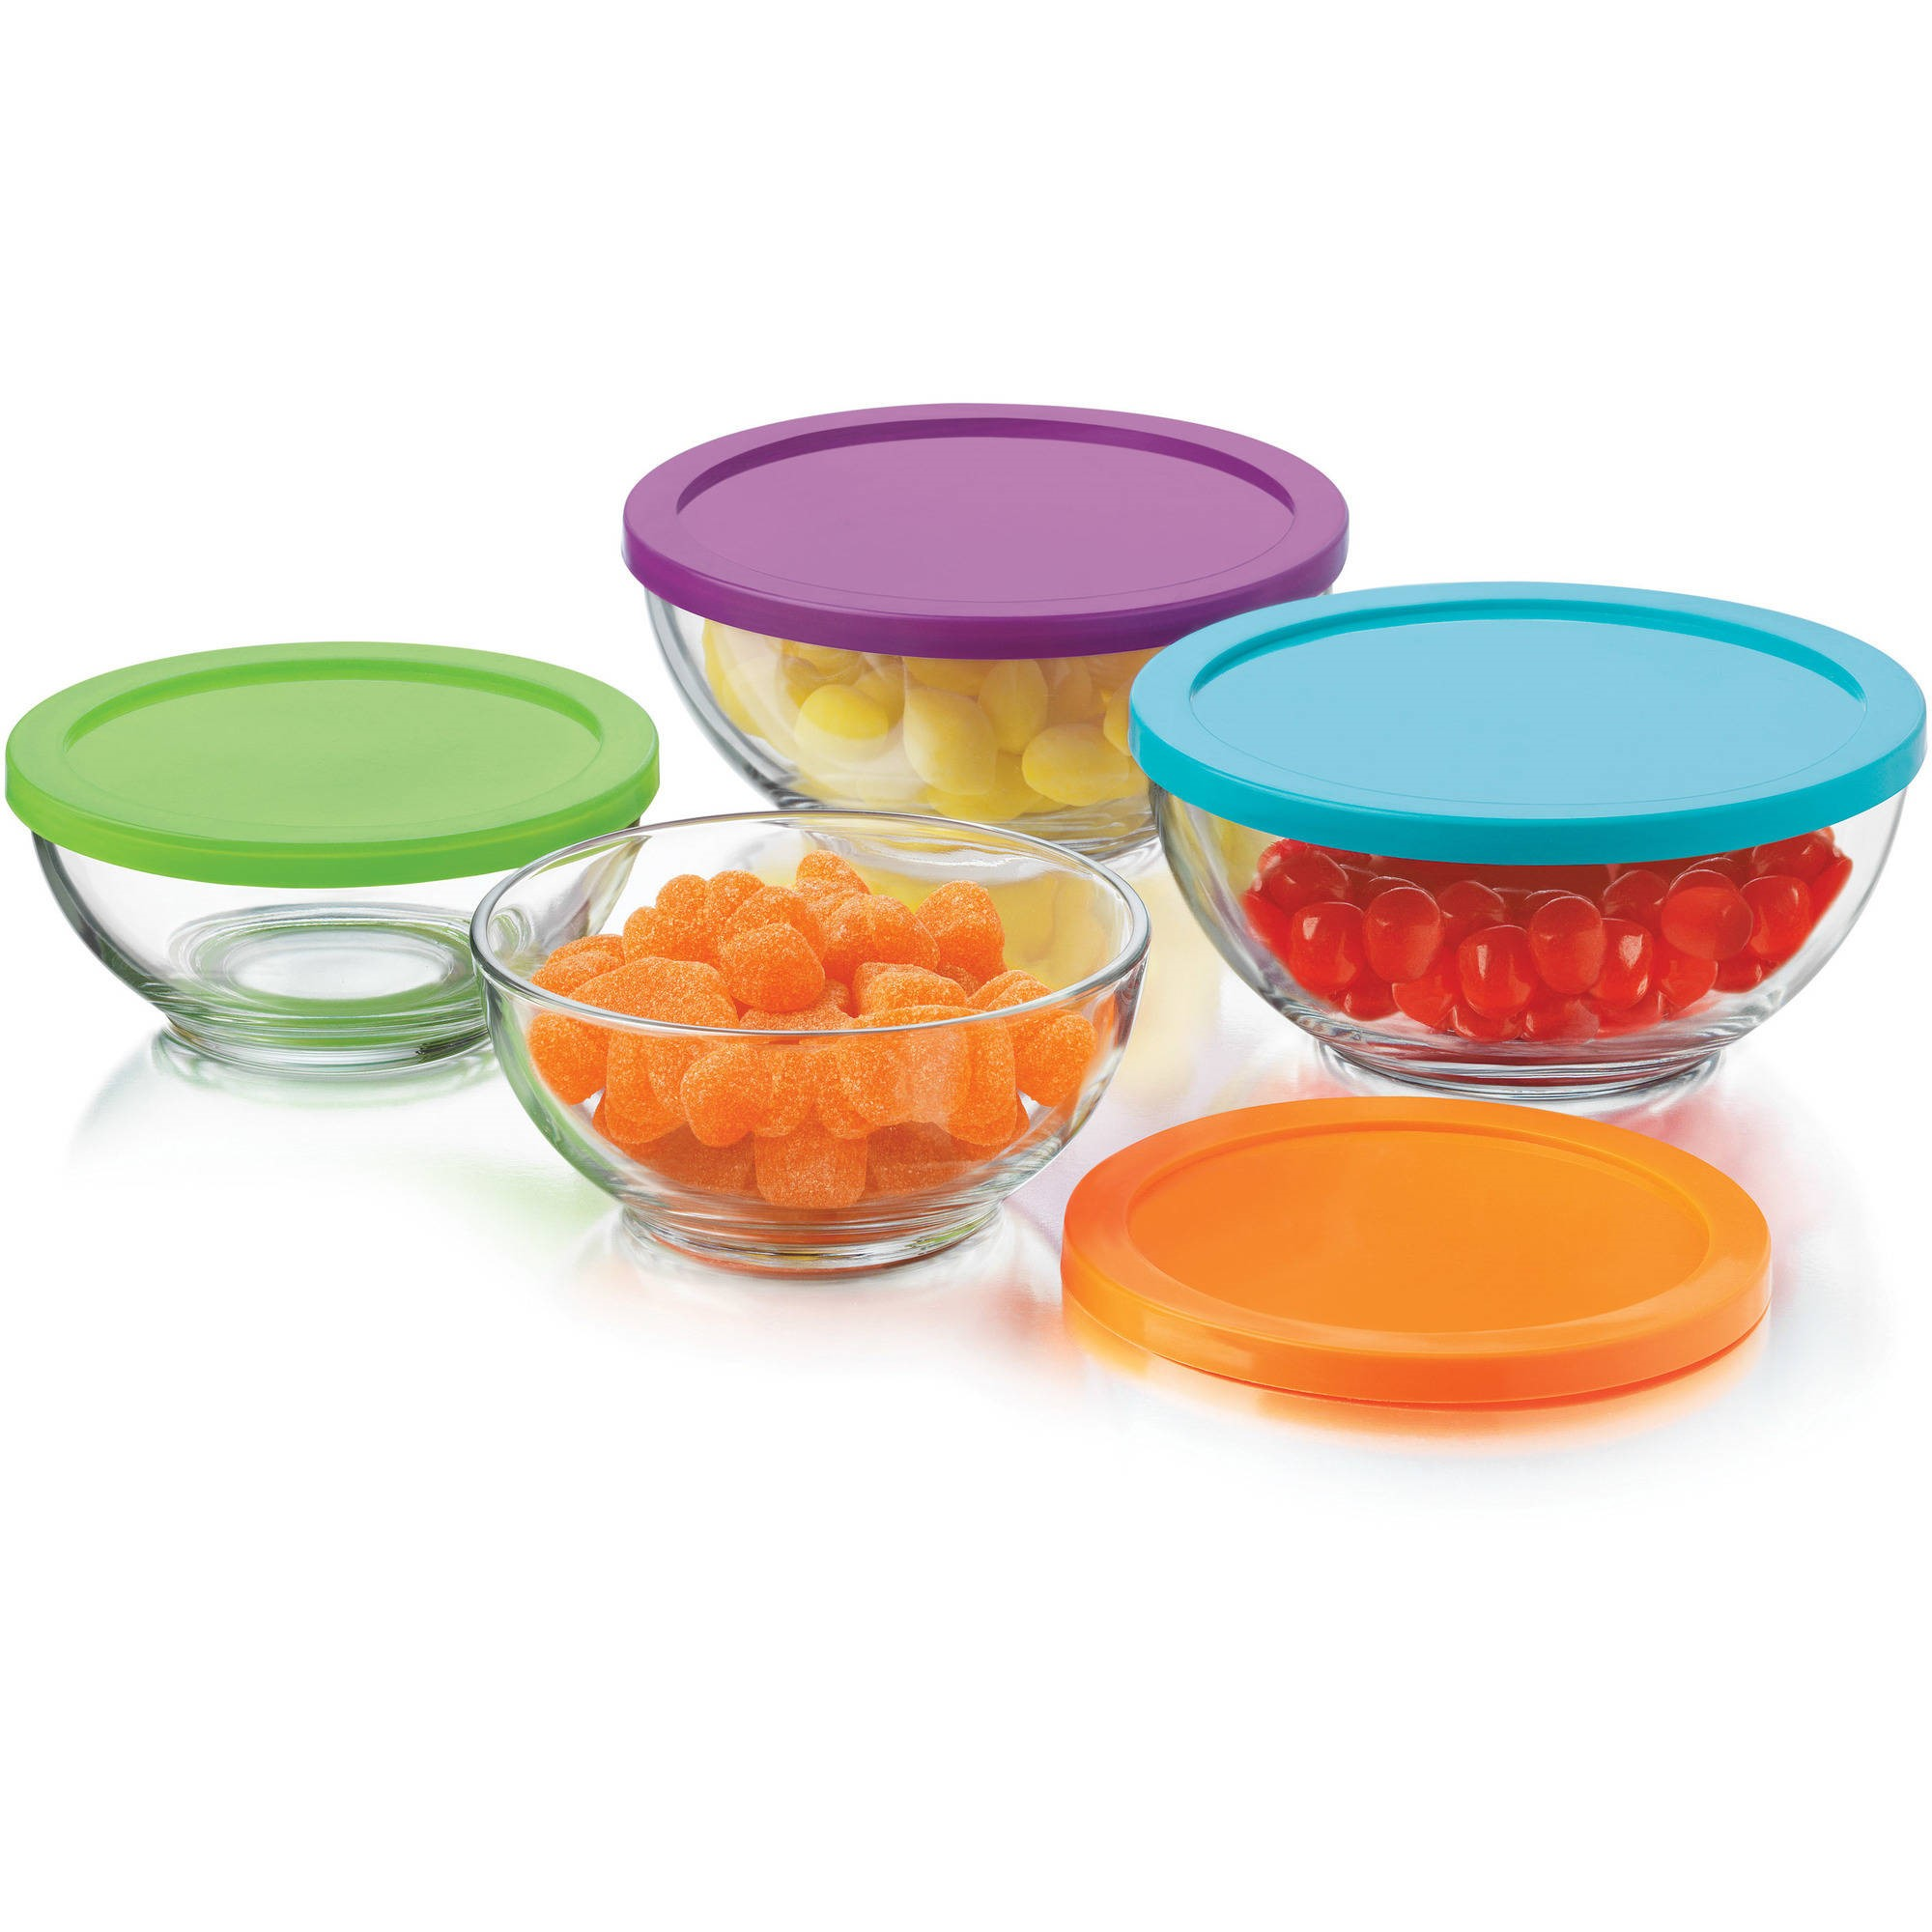 Libbey 8pc Moderno Bowls with lids